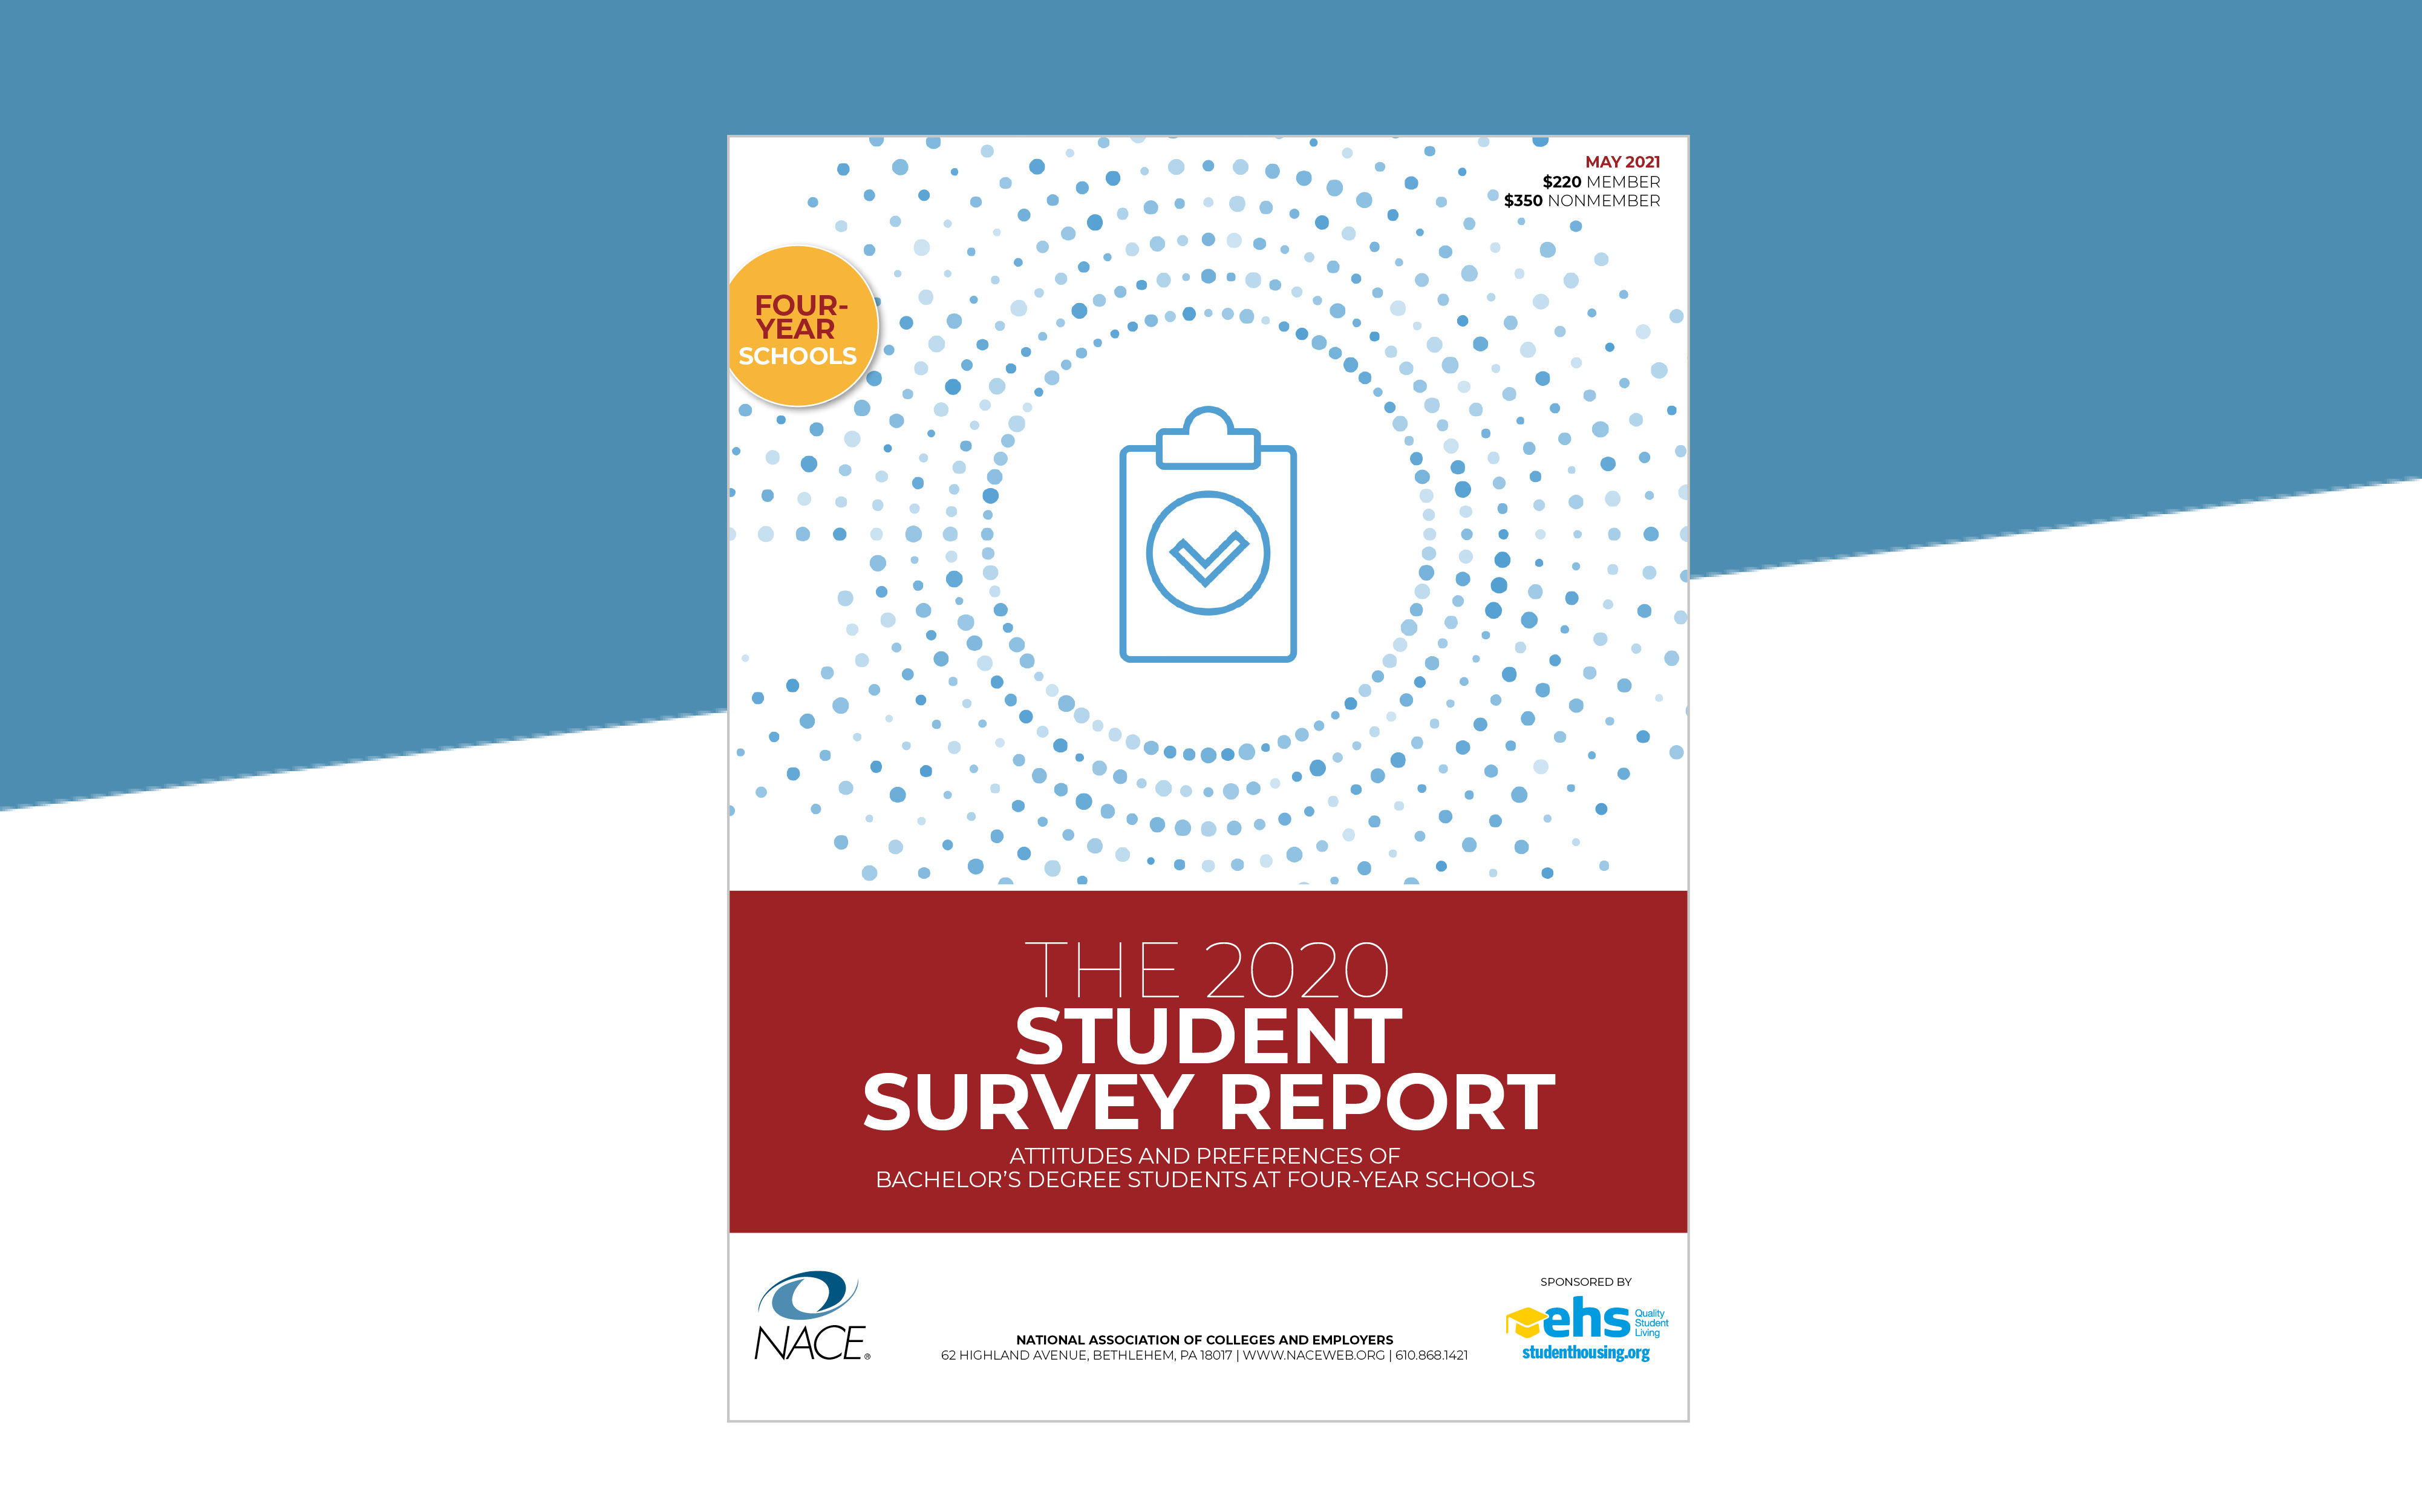 2020 Student Survey Report - 4 Year